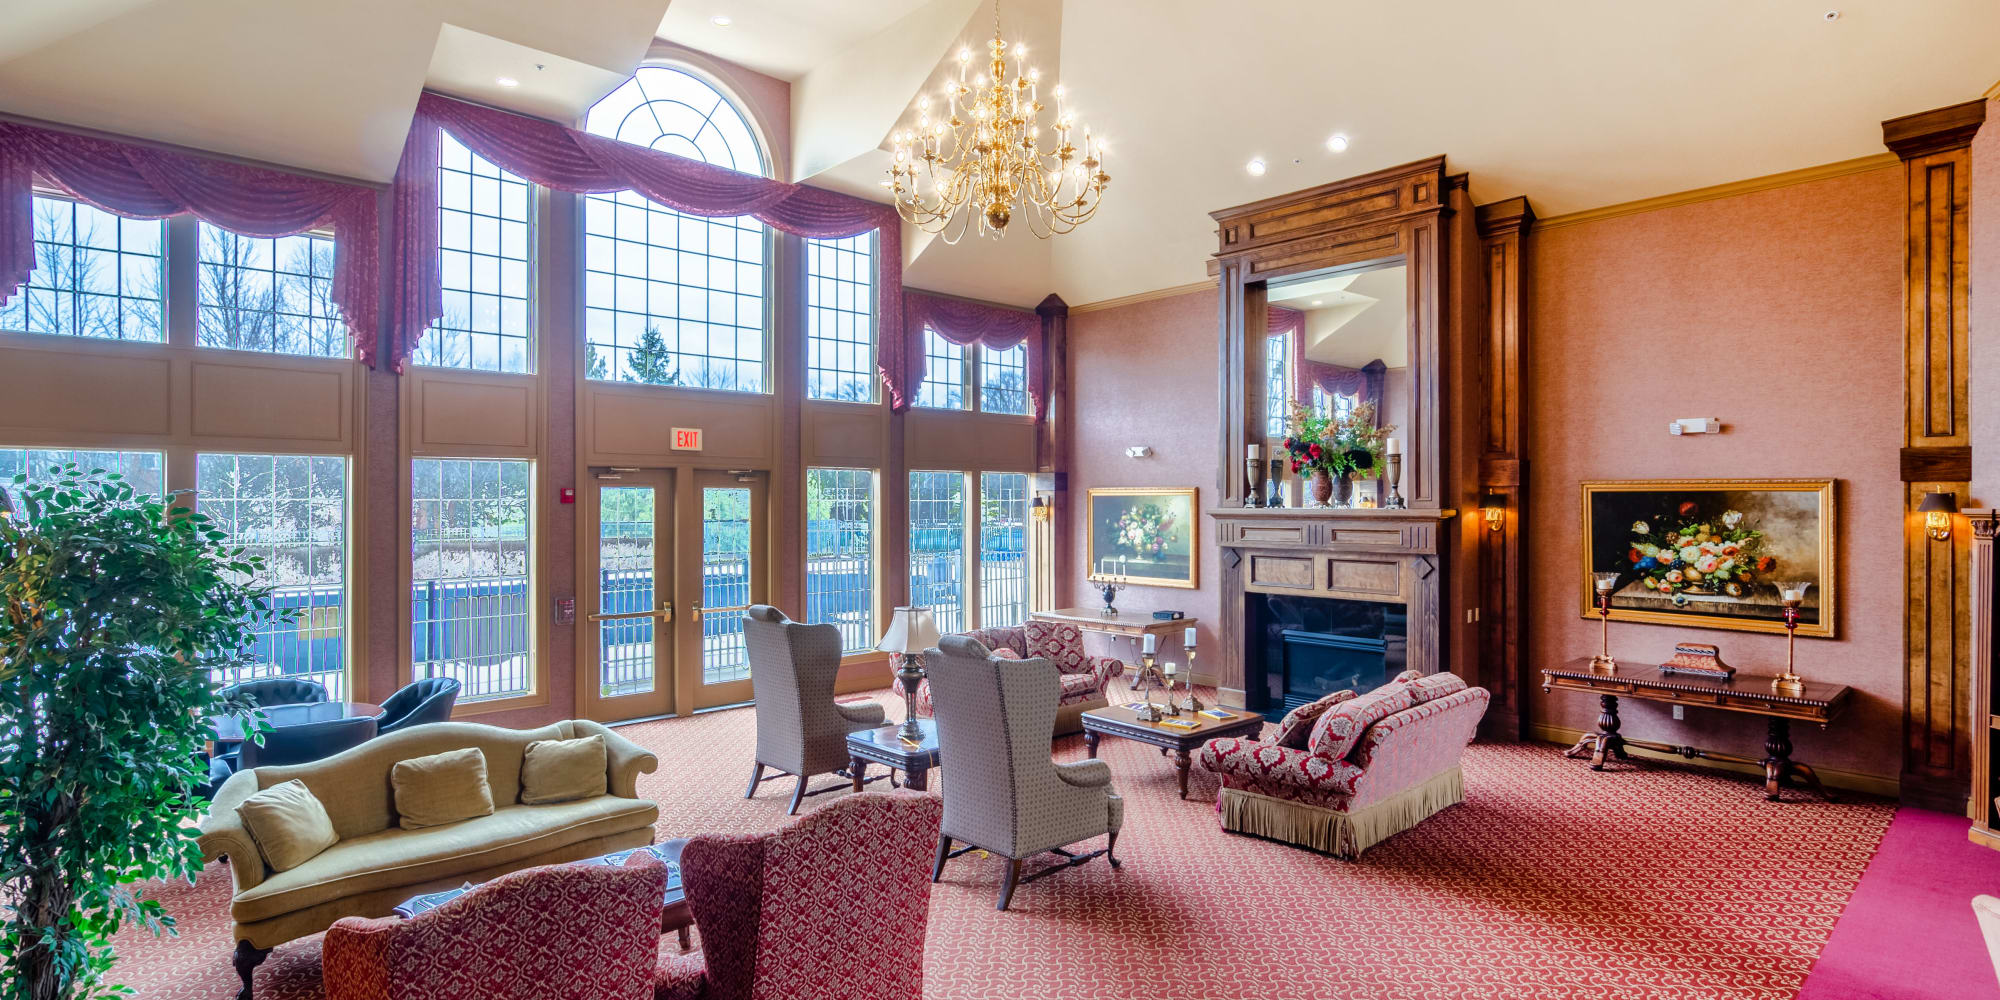 A beautiful lounge area at Central Park Estates in Novi, Michigan